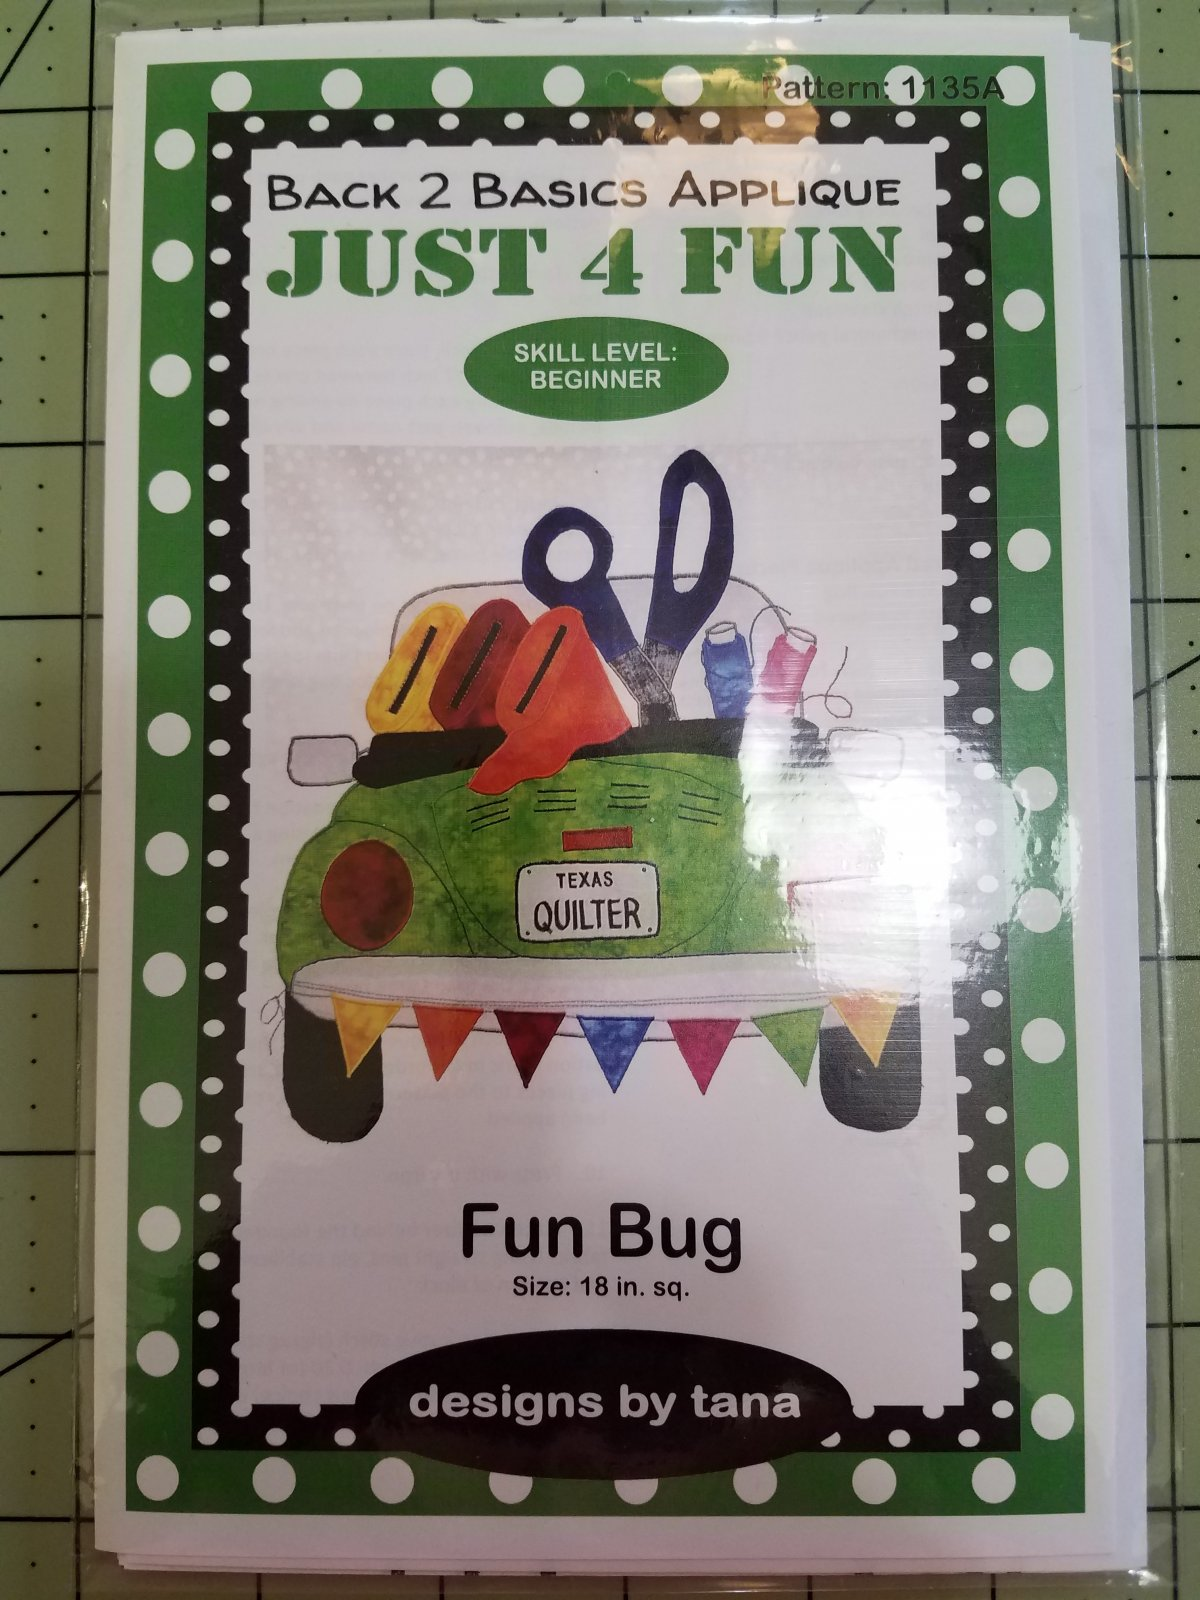 Fun Bug Green Applique Pattern and Kit